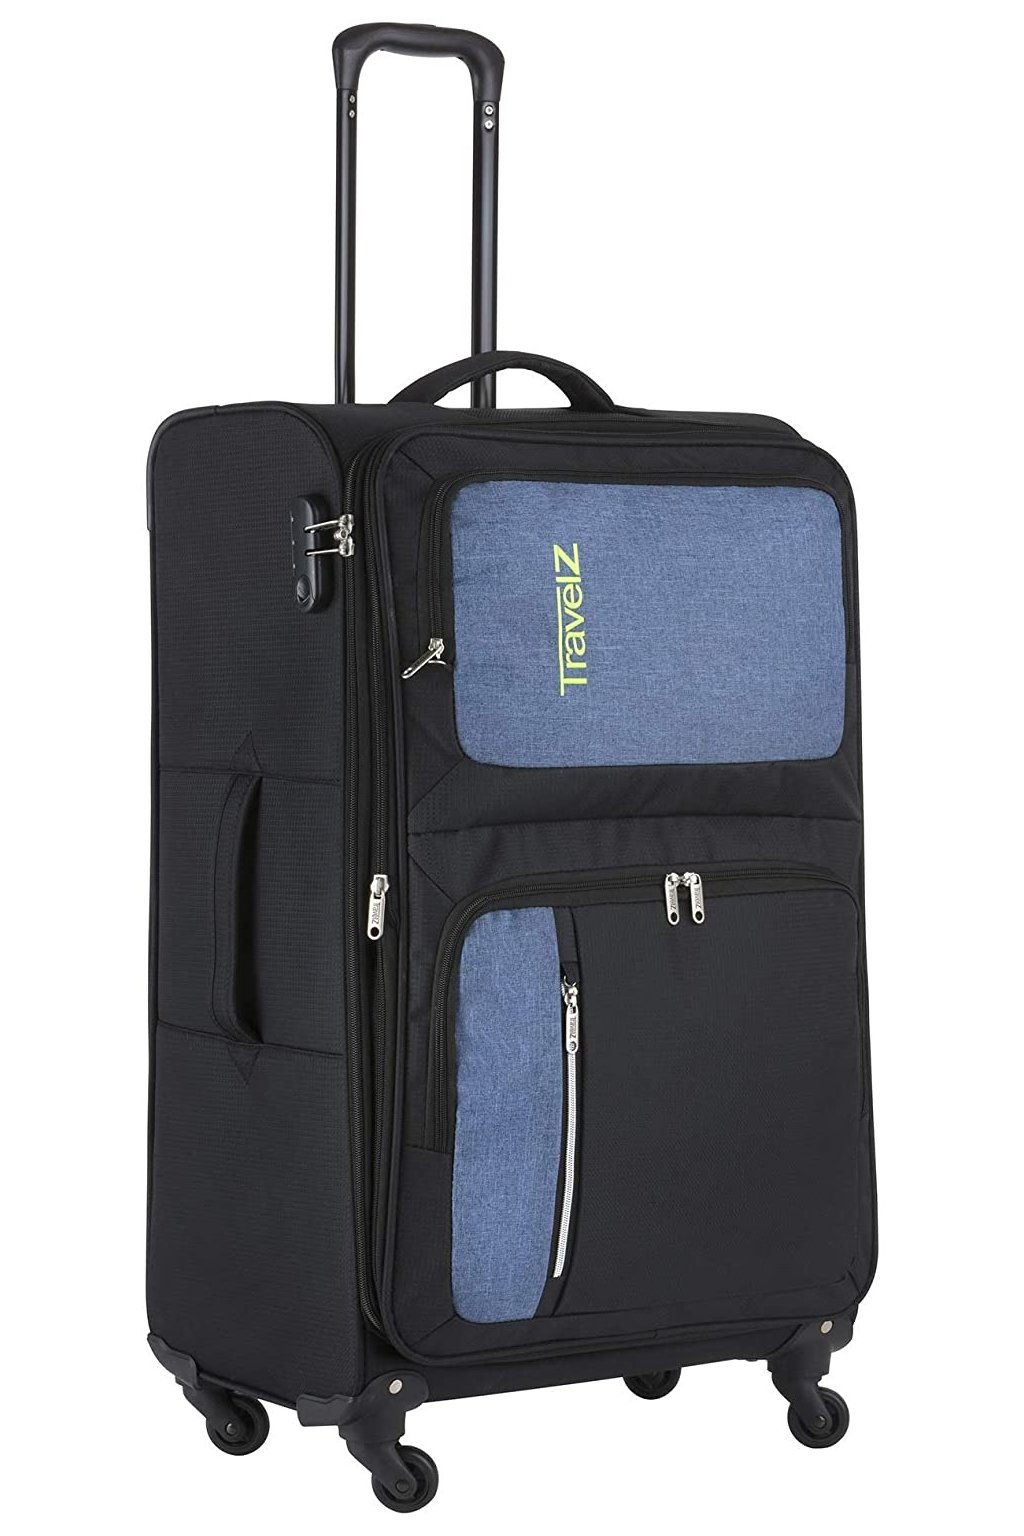 kufrland travelz tripplepocket (9)